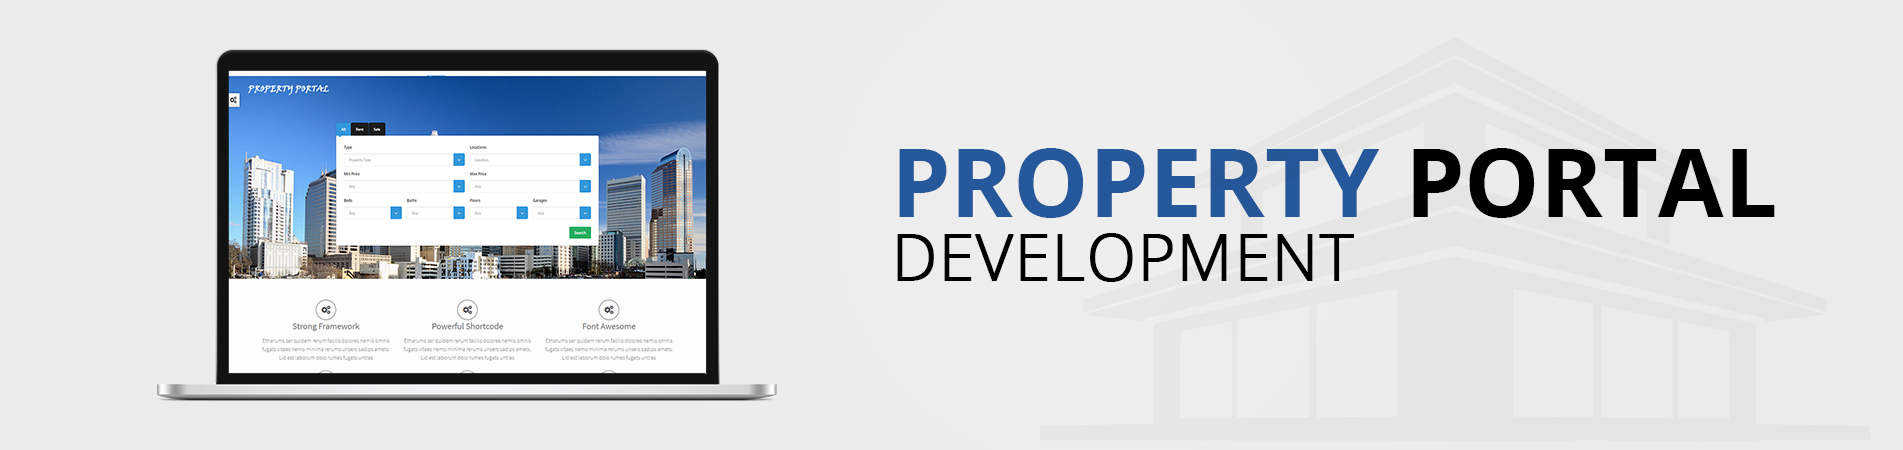 Property Portal Services in Bangalore